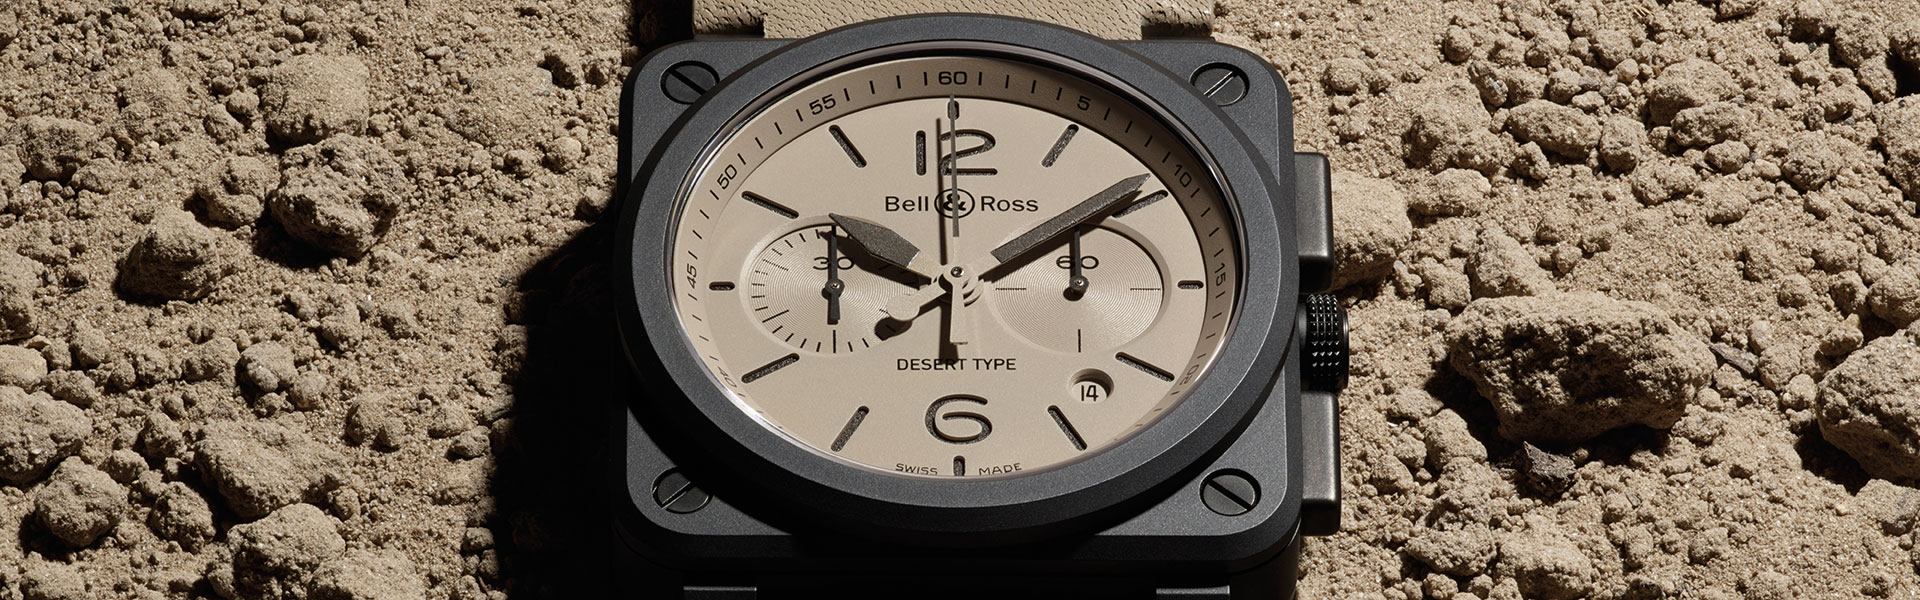 Bell-and-Ross2